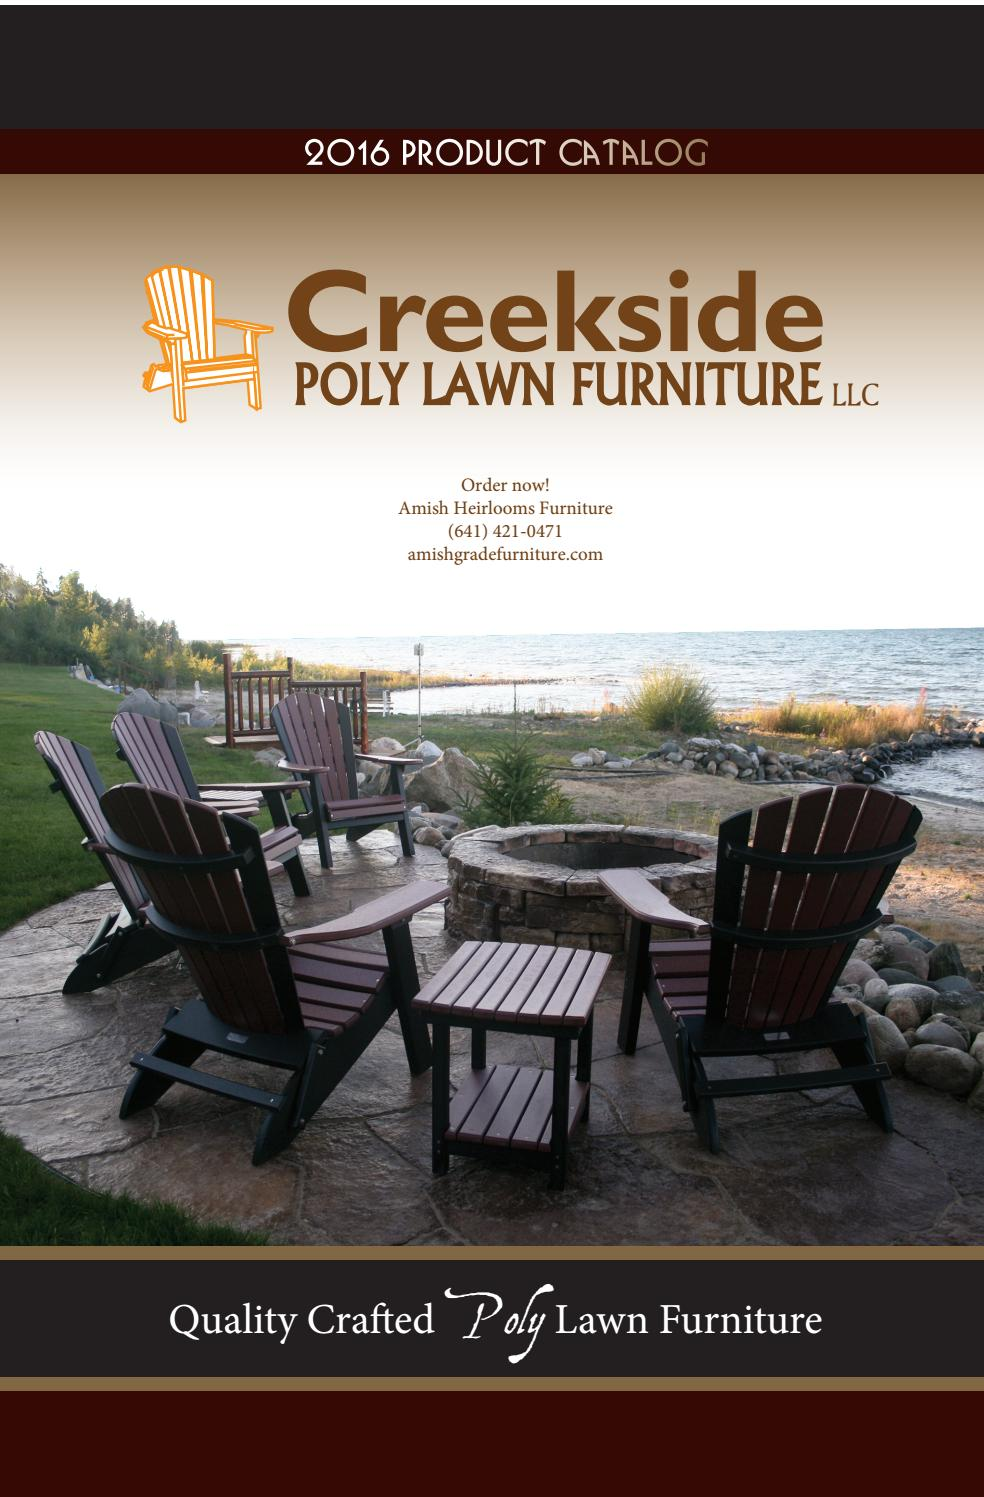 Creekside Outdoor Furniture Poly Lawn Funiture Catalog